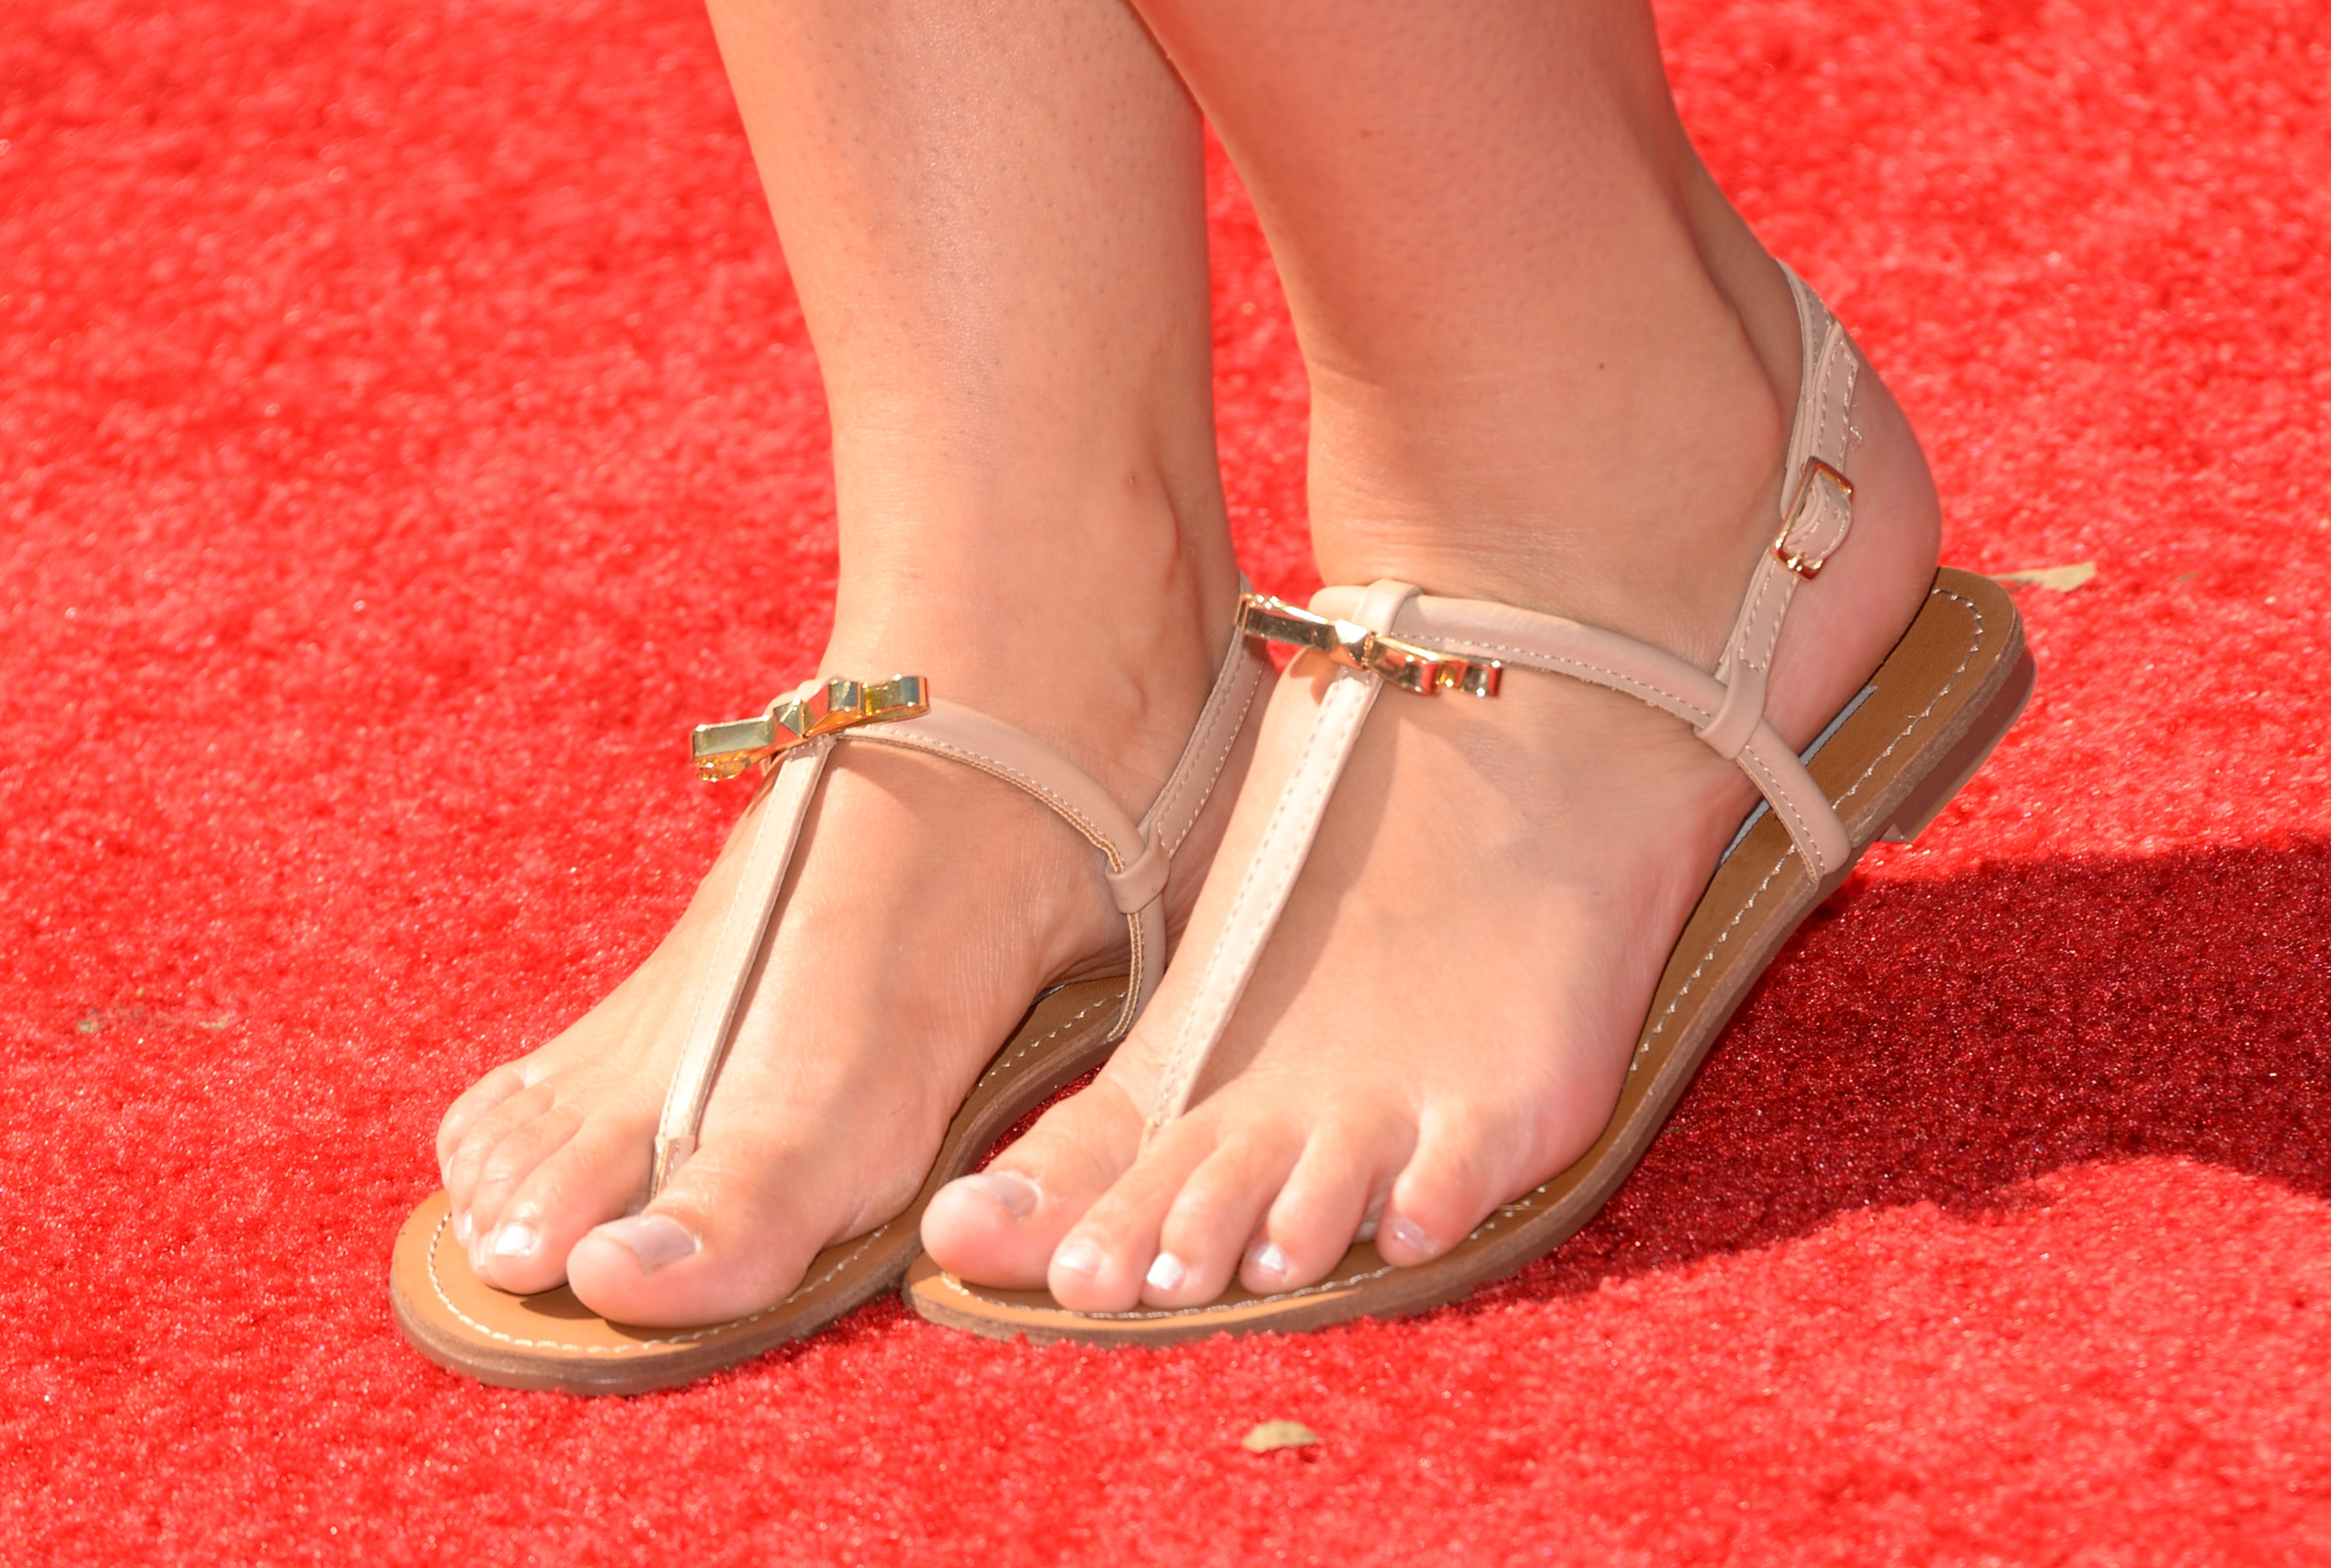 684aa0881 8 Ways to Make Sandals More Comfortable